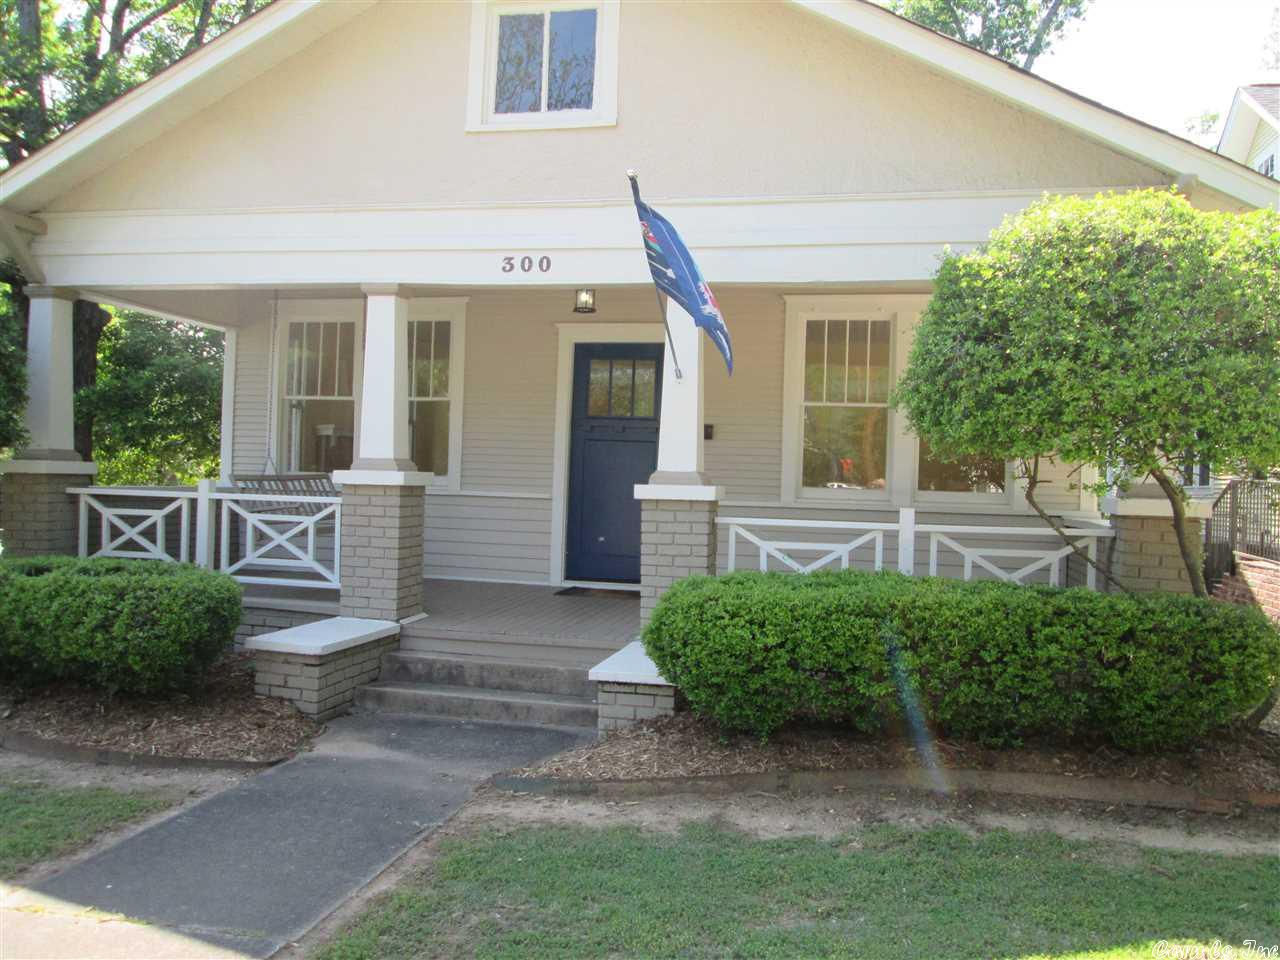 300 N Ash, Little Rock, AR 72205